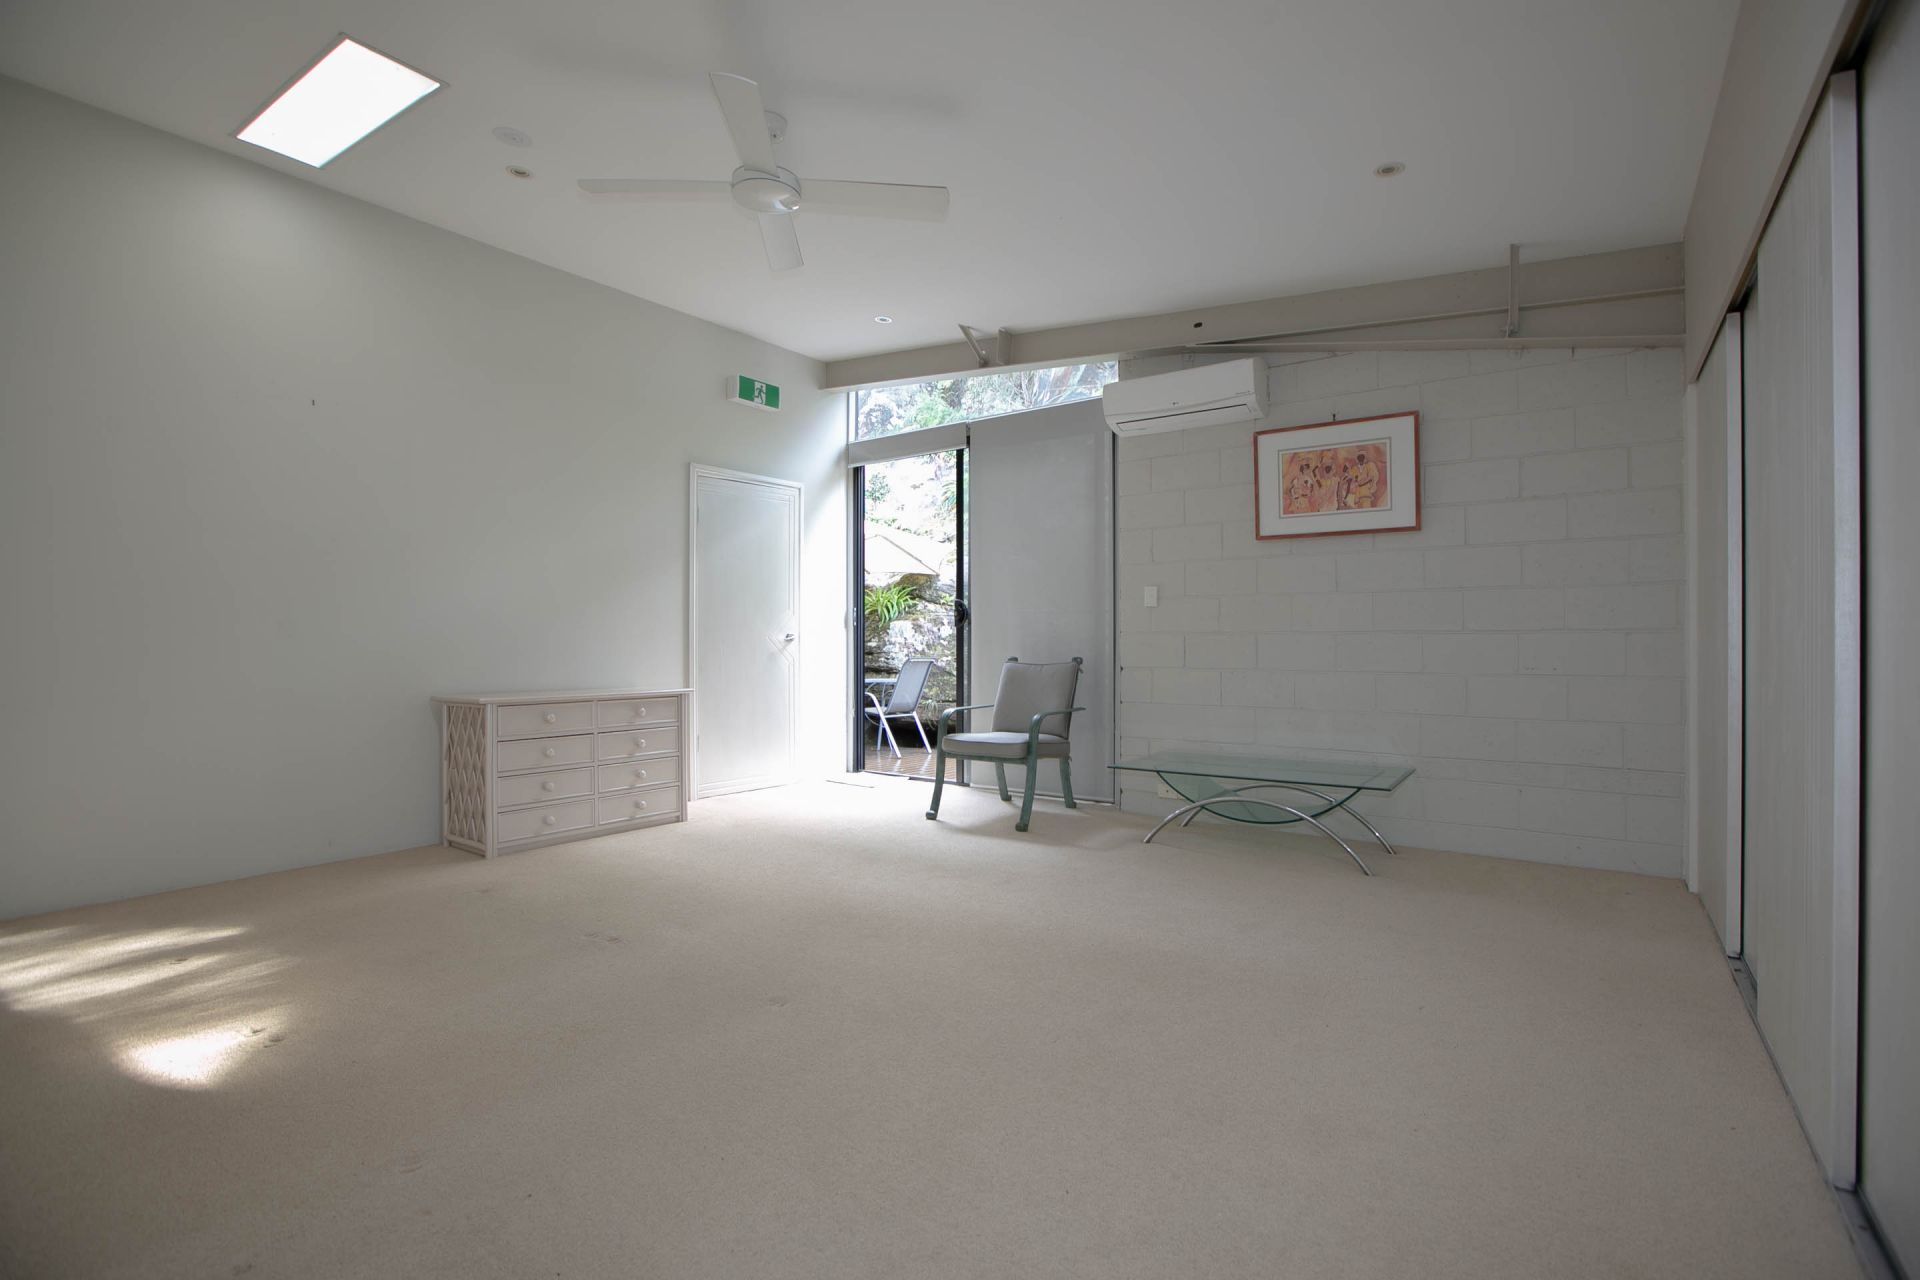 FOR LEASE 250SQM OFFICE HUB OR STUDIO IN THE HEART OF CROMER